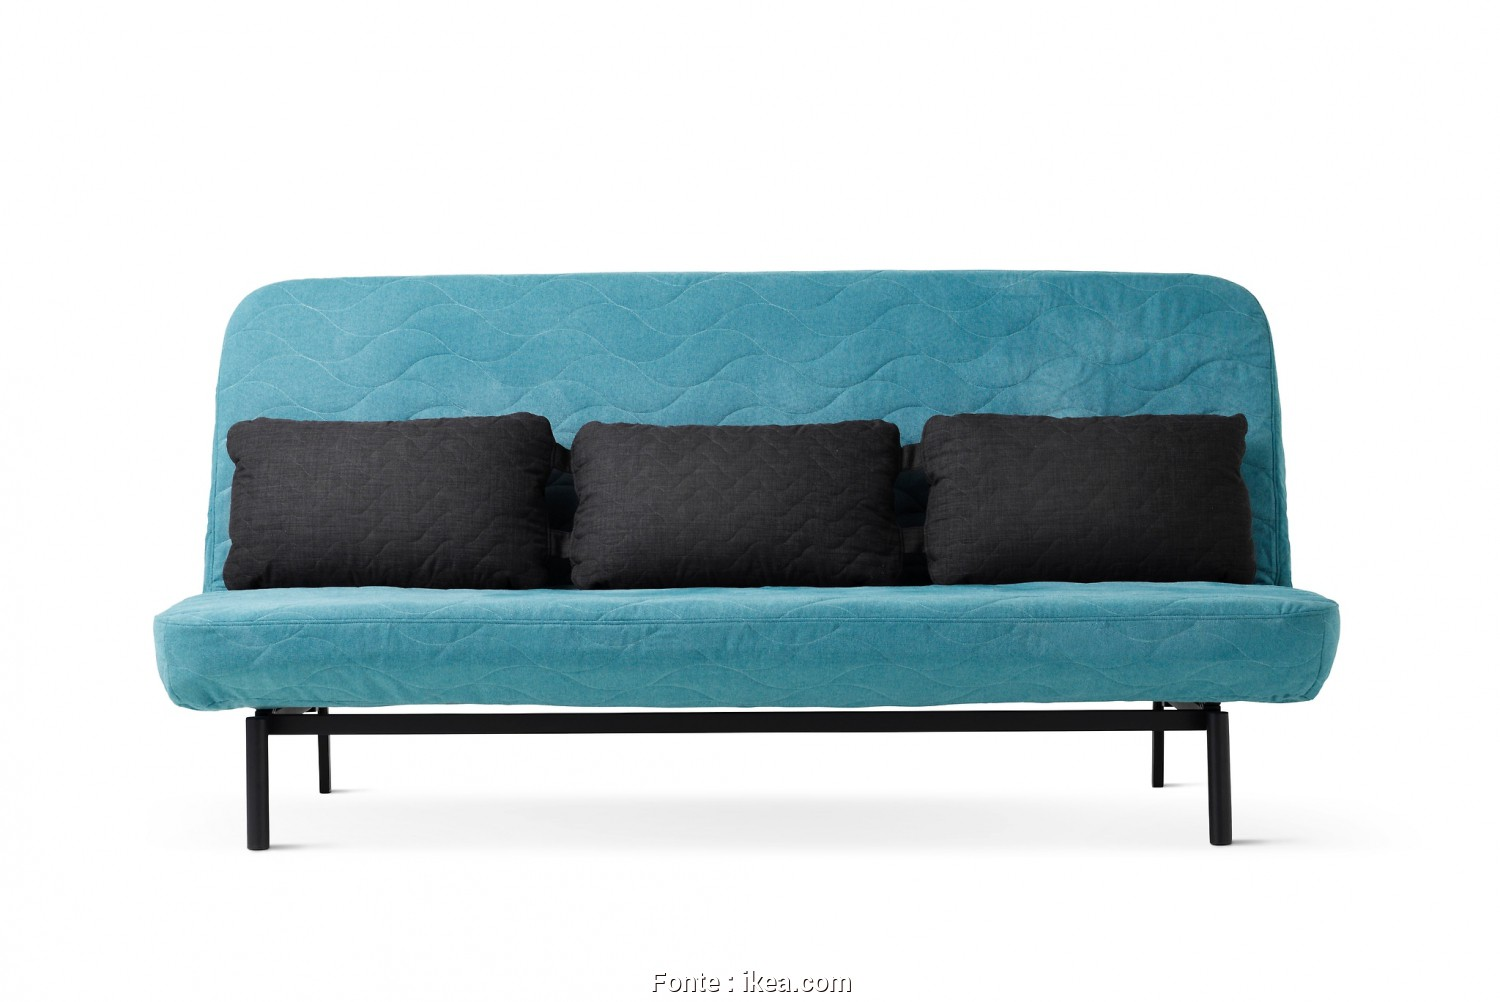 Grankulla Ikea Prix, Minimalista Sofa By, And, By Night,, NYHAMN Sofa, Comes In Blue Or